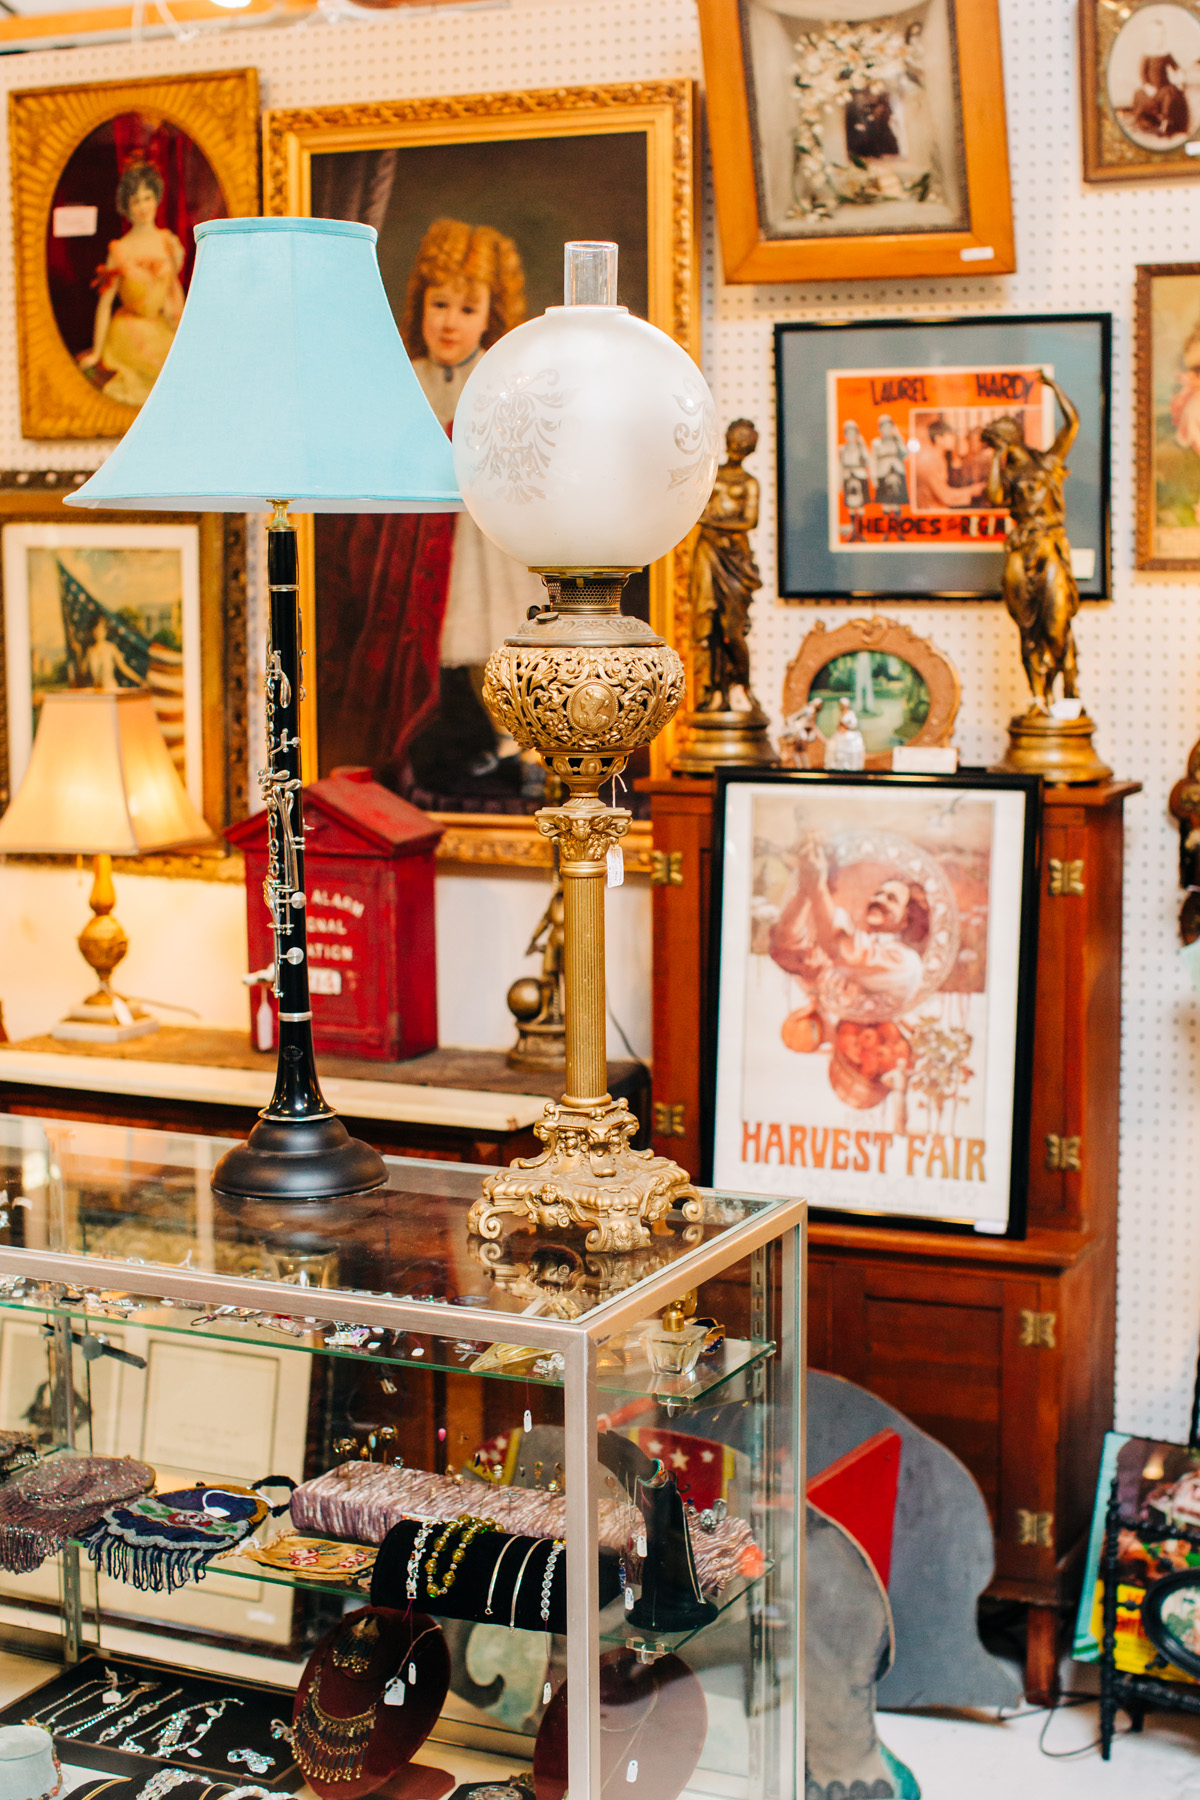 Why buy Antiques?